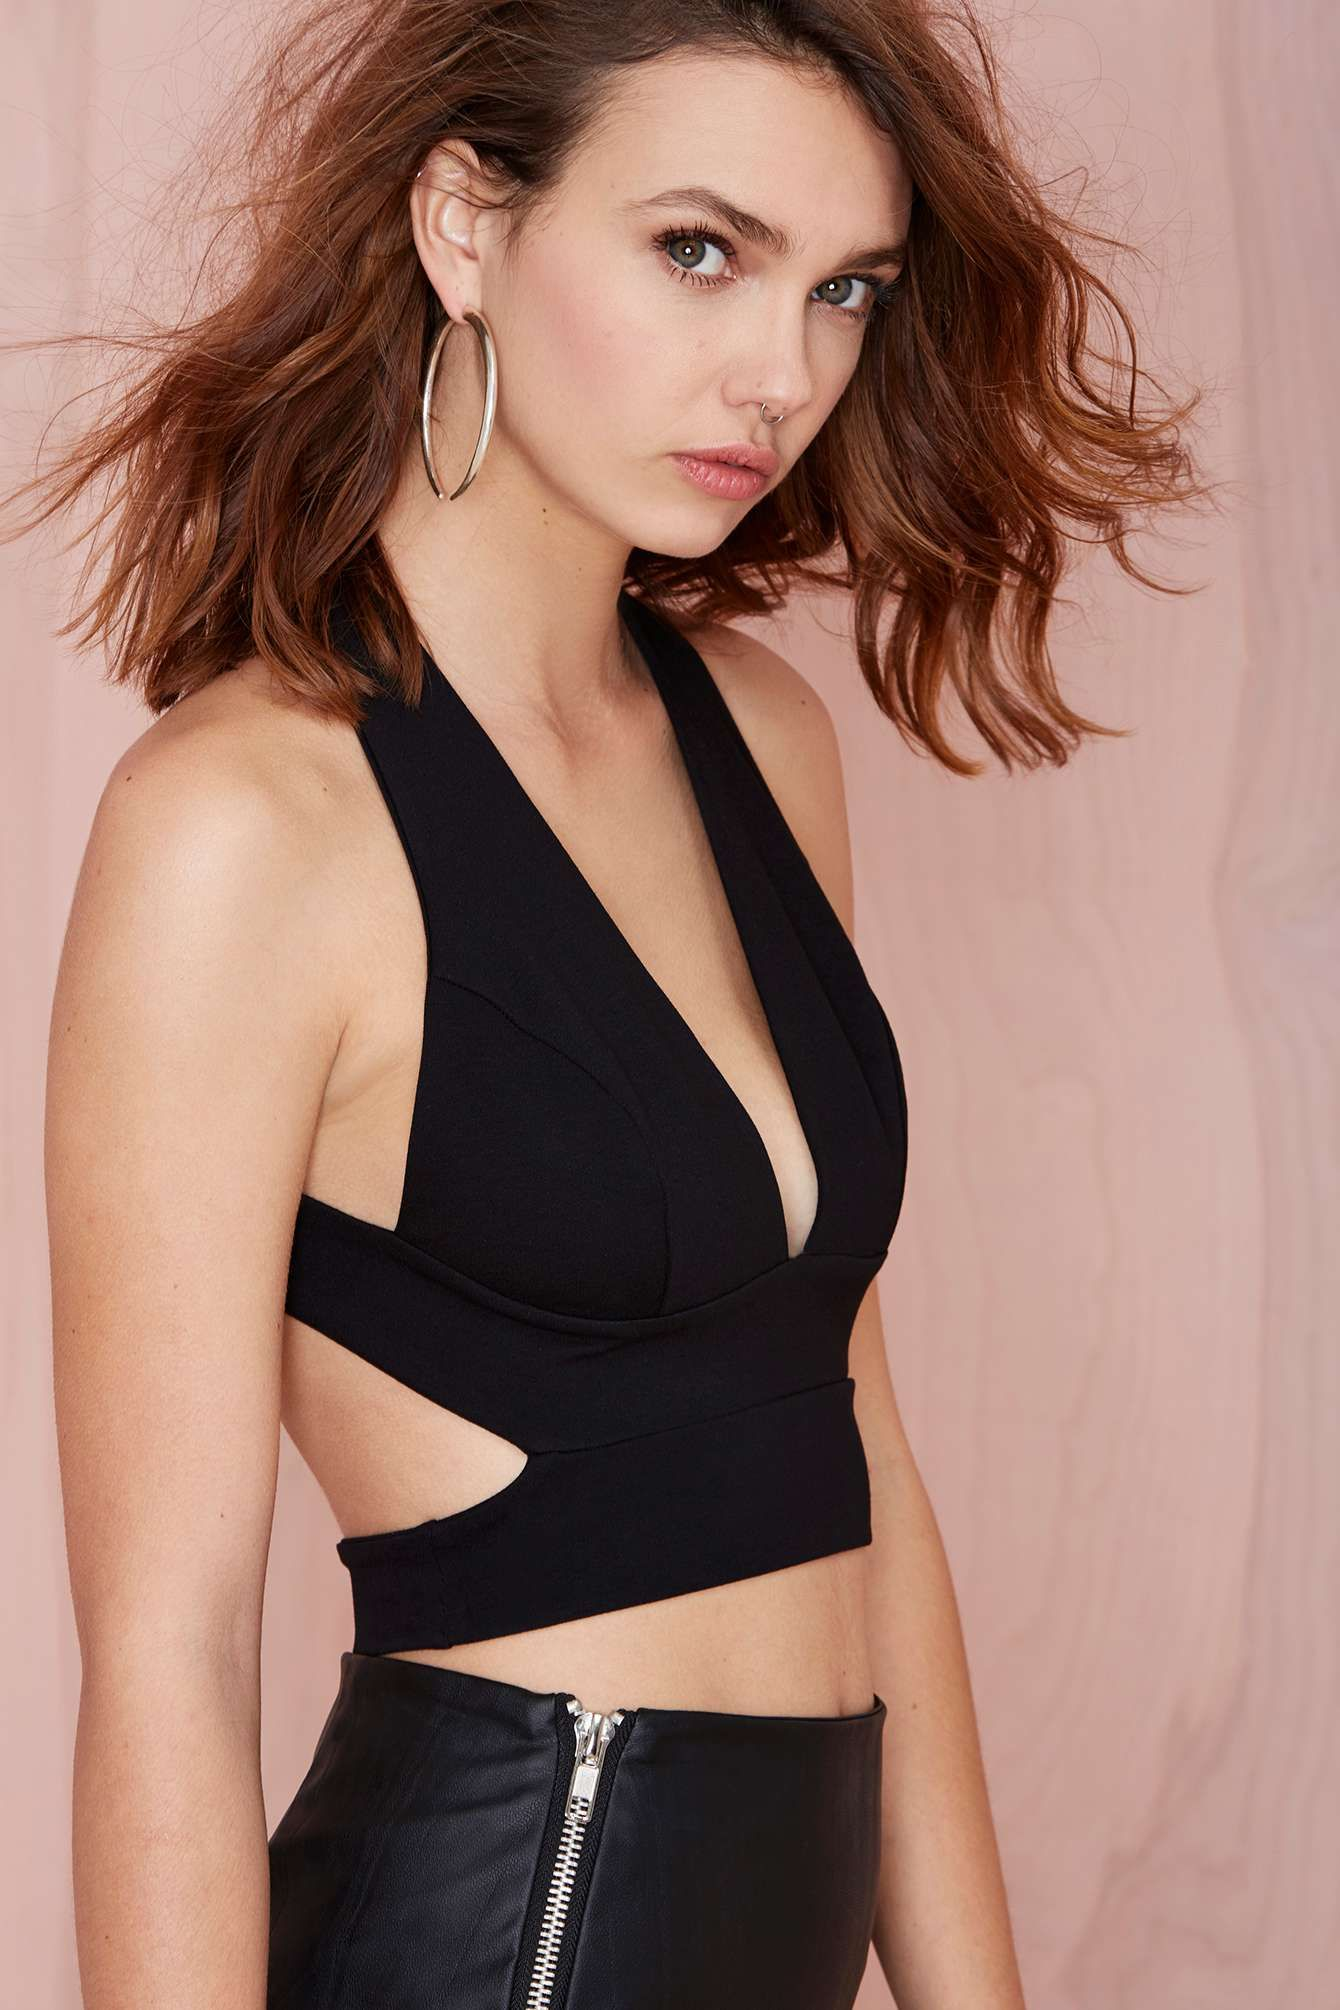 #BLACKFRIDAY STEALS | Plunge In Crop Top - $29